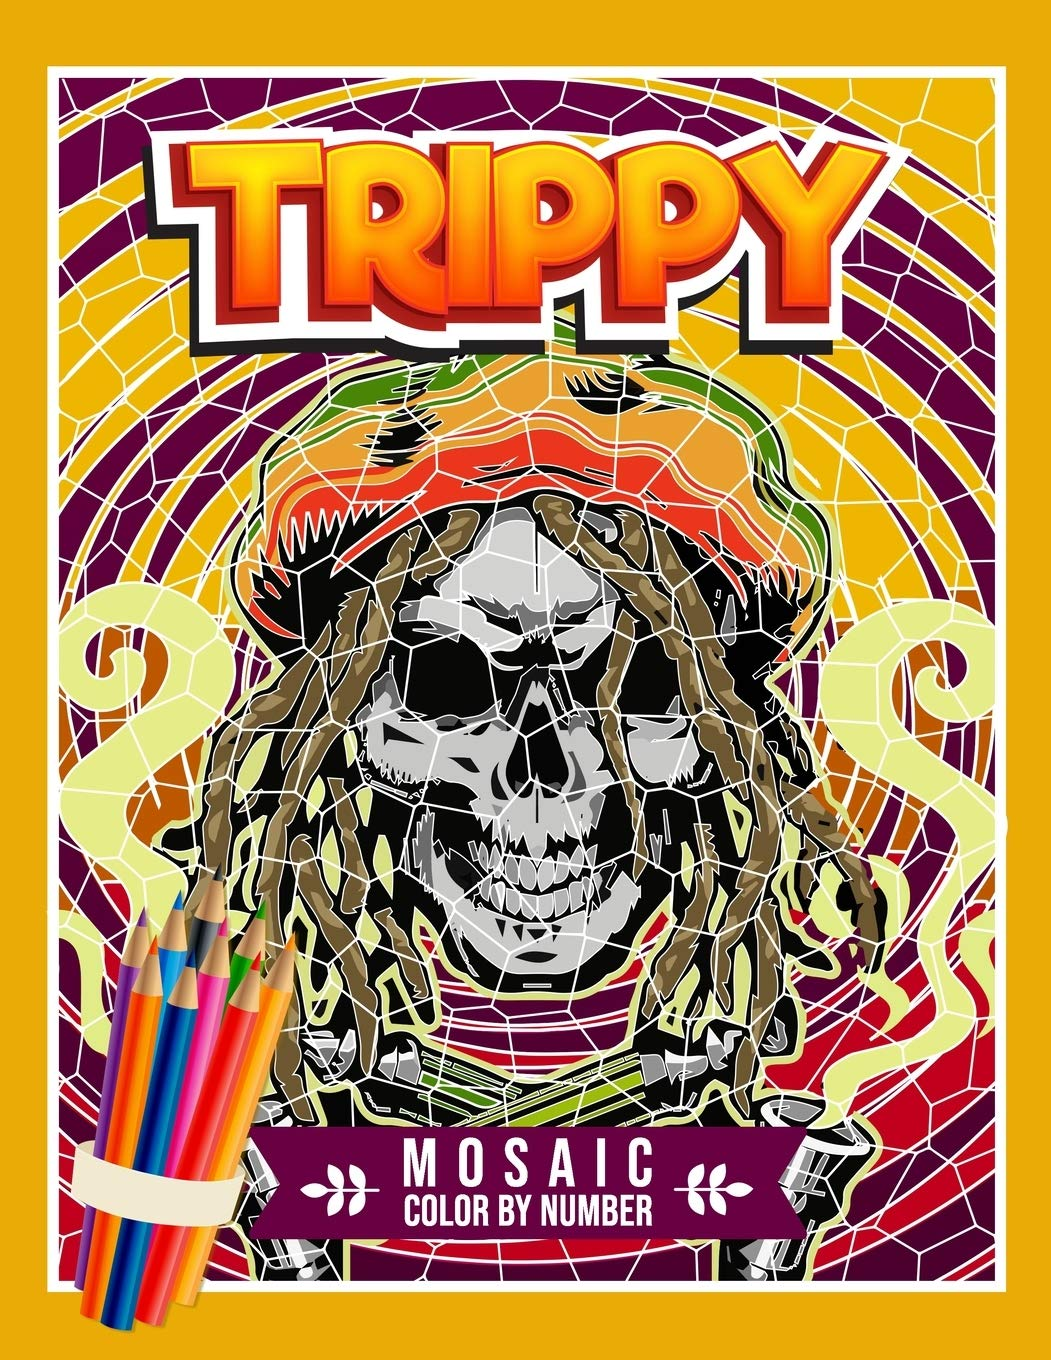 Amazon Com Trippy Mosaic Color By Number Stoner Coloring Book For Adults With Hidden Psychedelic Designs And Mystery Geometric Picture Puzzles 9798650903987 Mosley Melanie Books